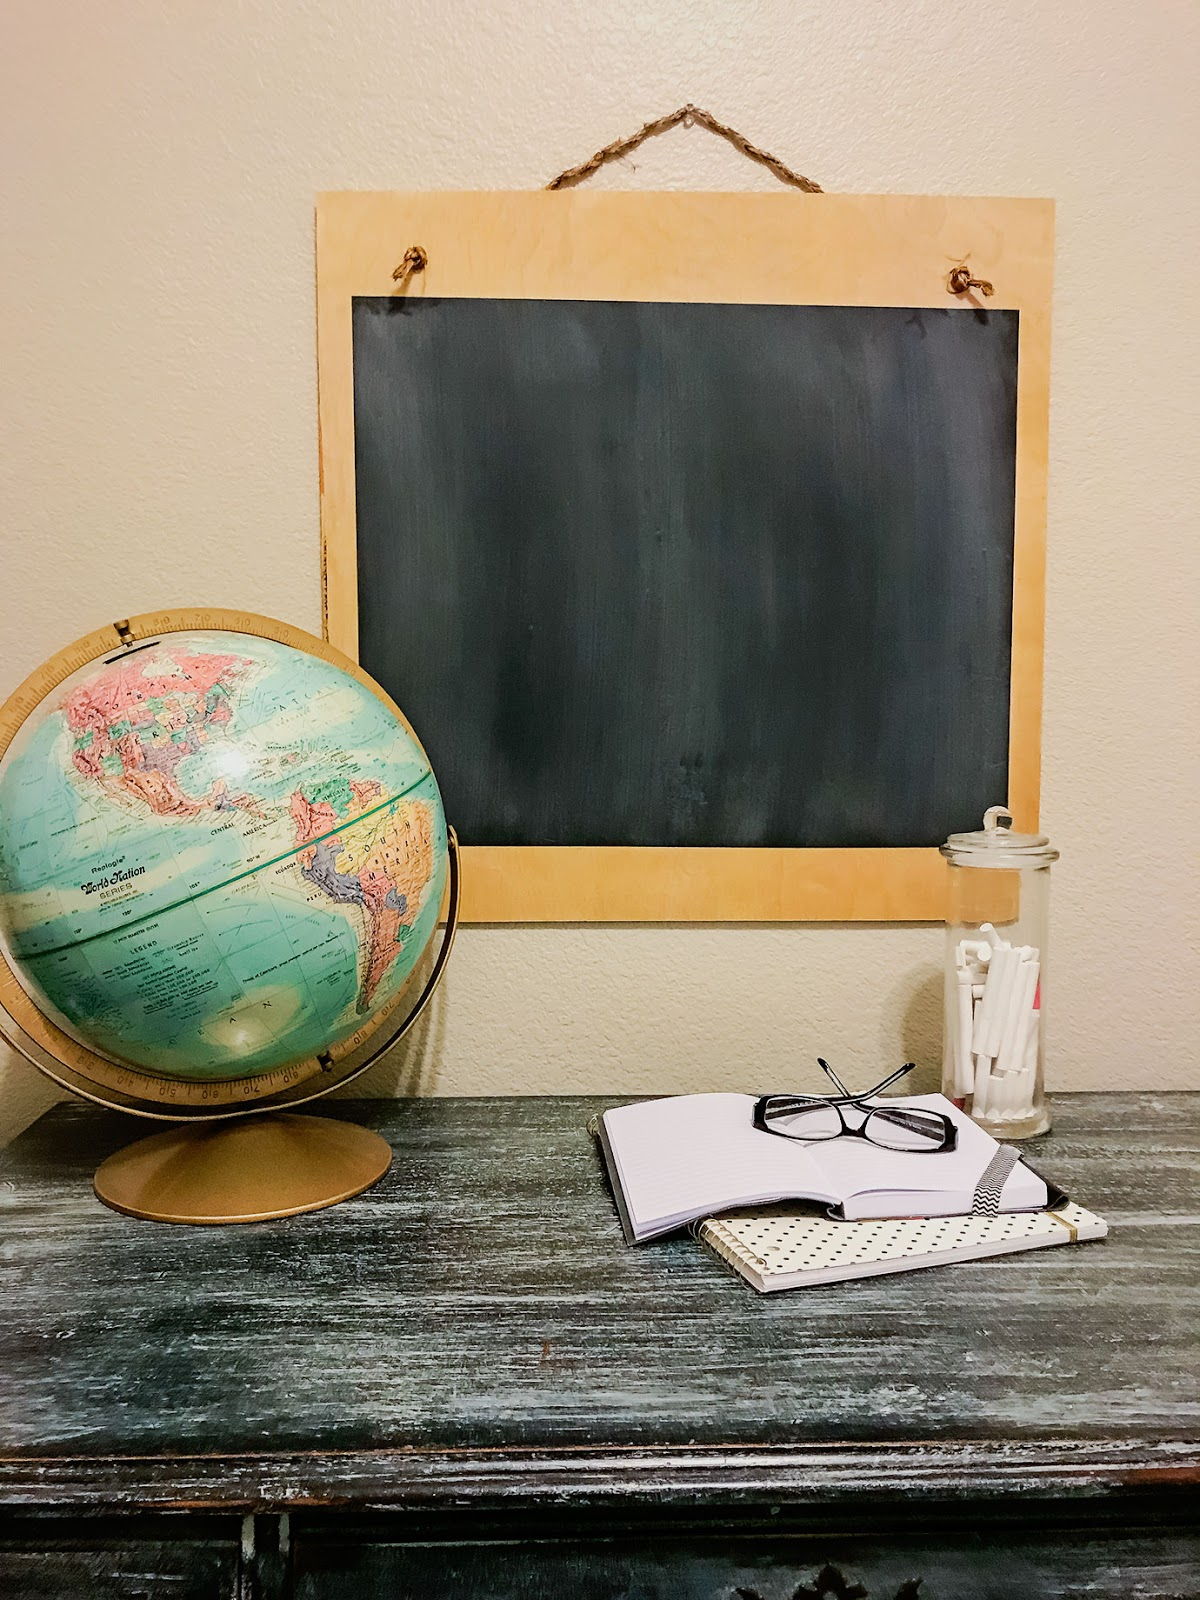 DIY Chalkboard with Globe and a Vintage Black Desk